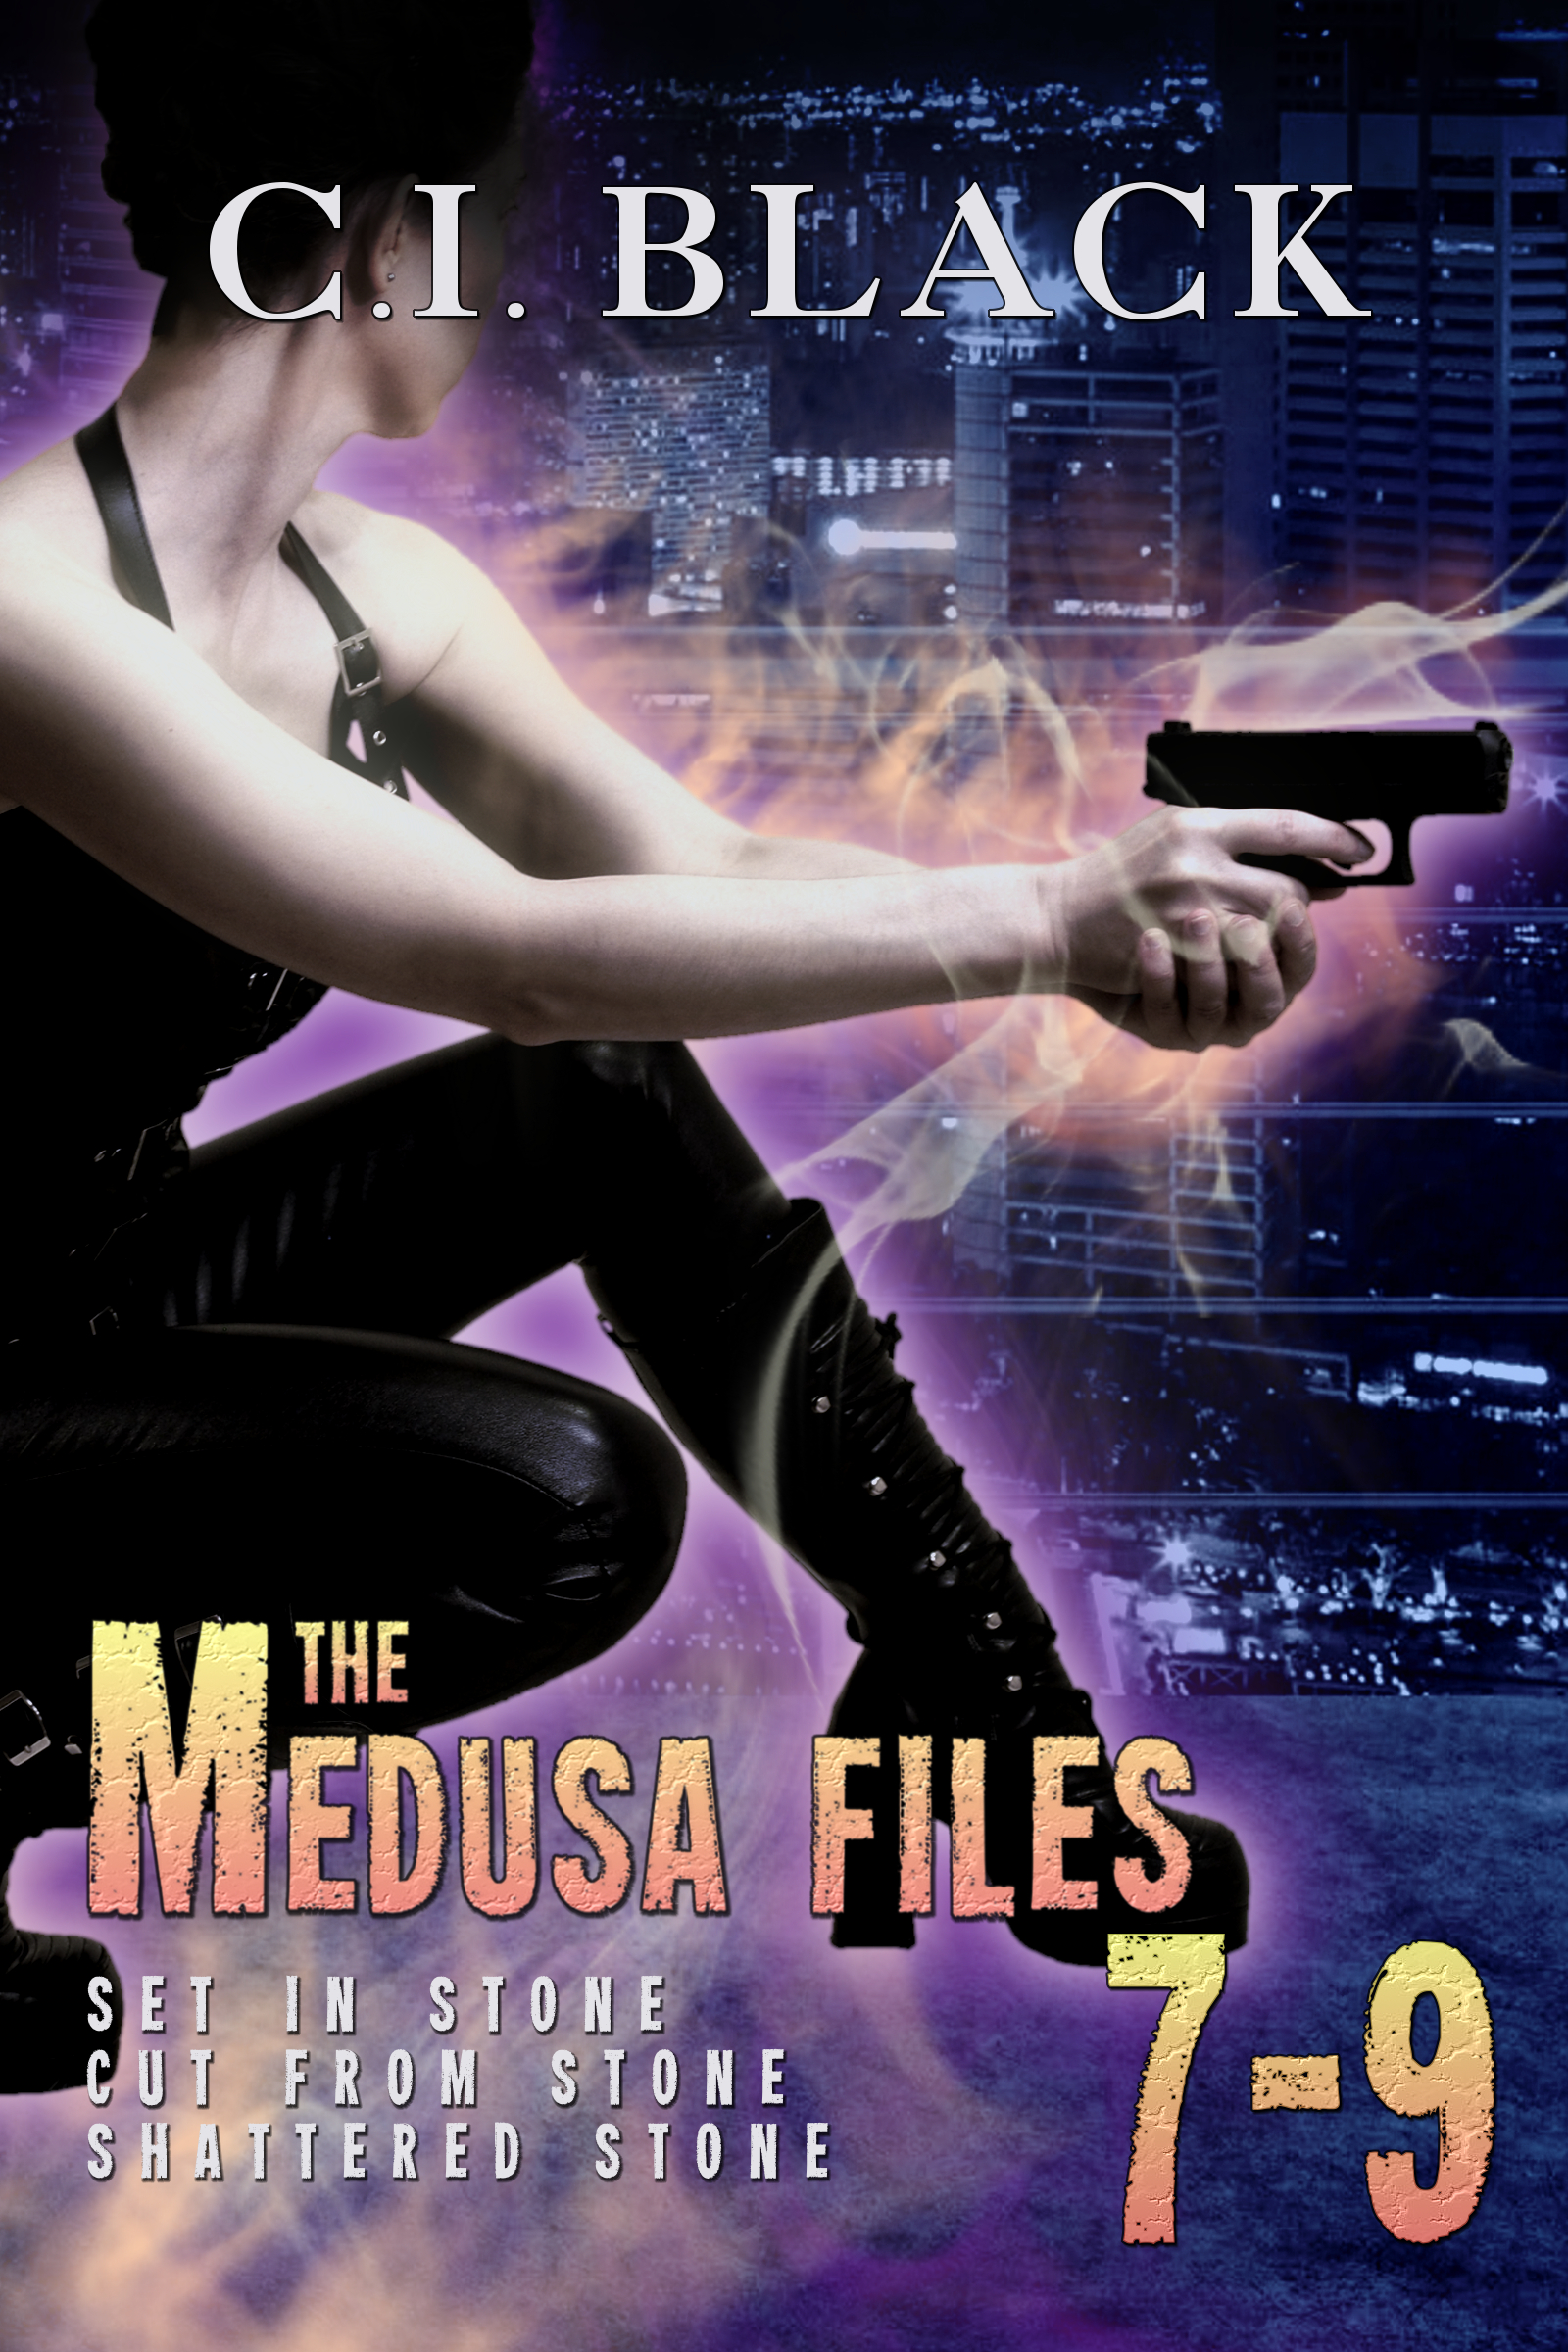 Medusa Files Collection 7 8 9 an urban fantasy / paranormal romance series by C.I. Black